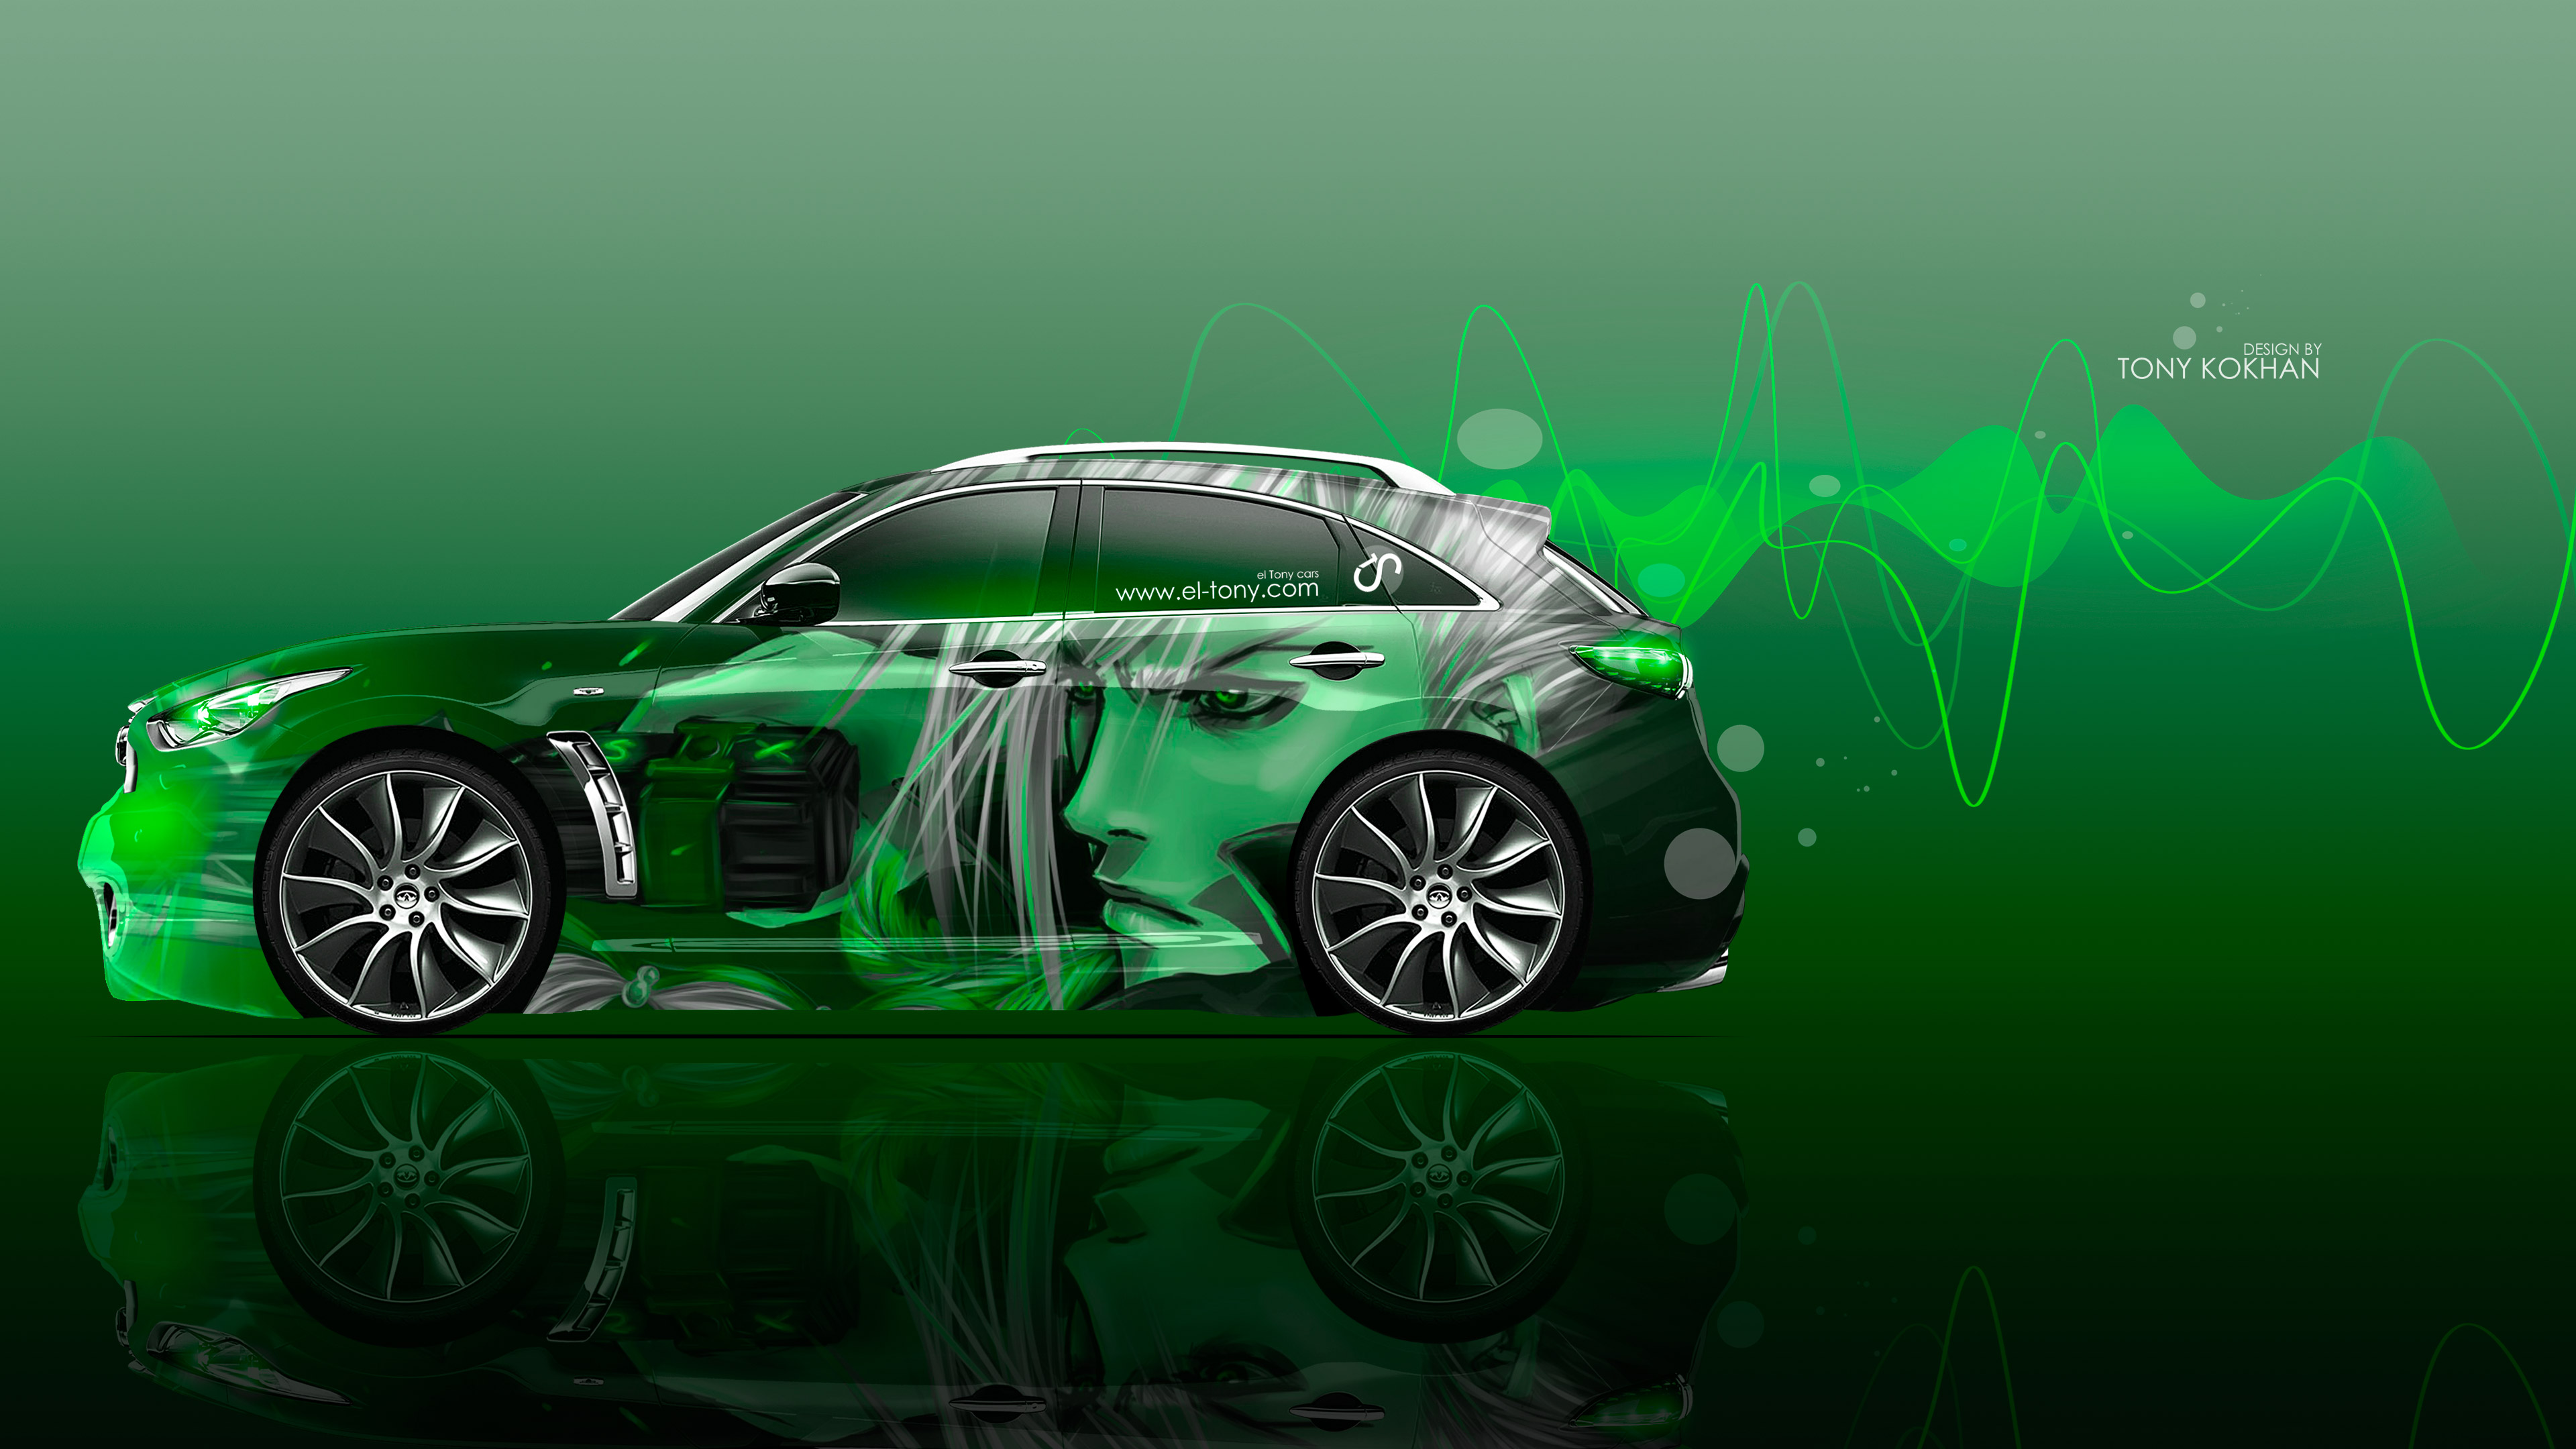 Infiniti-FX-Side-Anime-Boy-Aerography-Car-2016-Green-Neon-Effects-4K-Wallpapers-design-by-Tony-Kokhan-www.el-tony.com-image